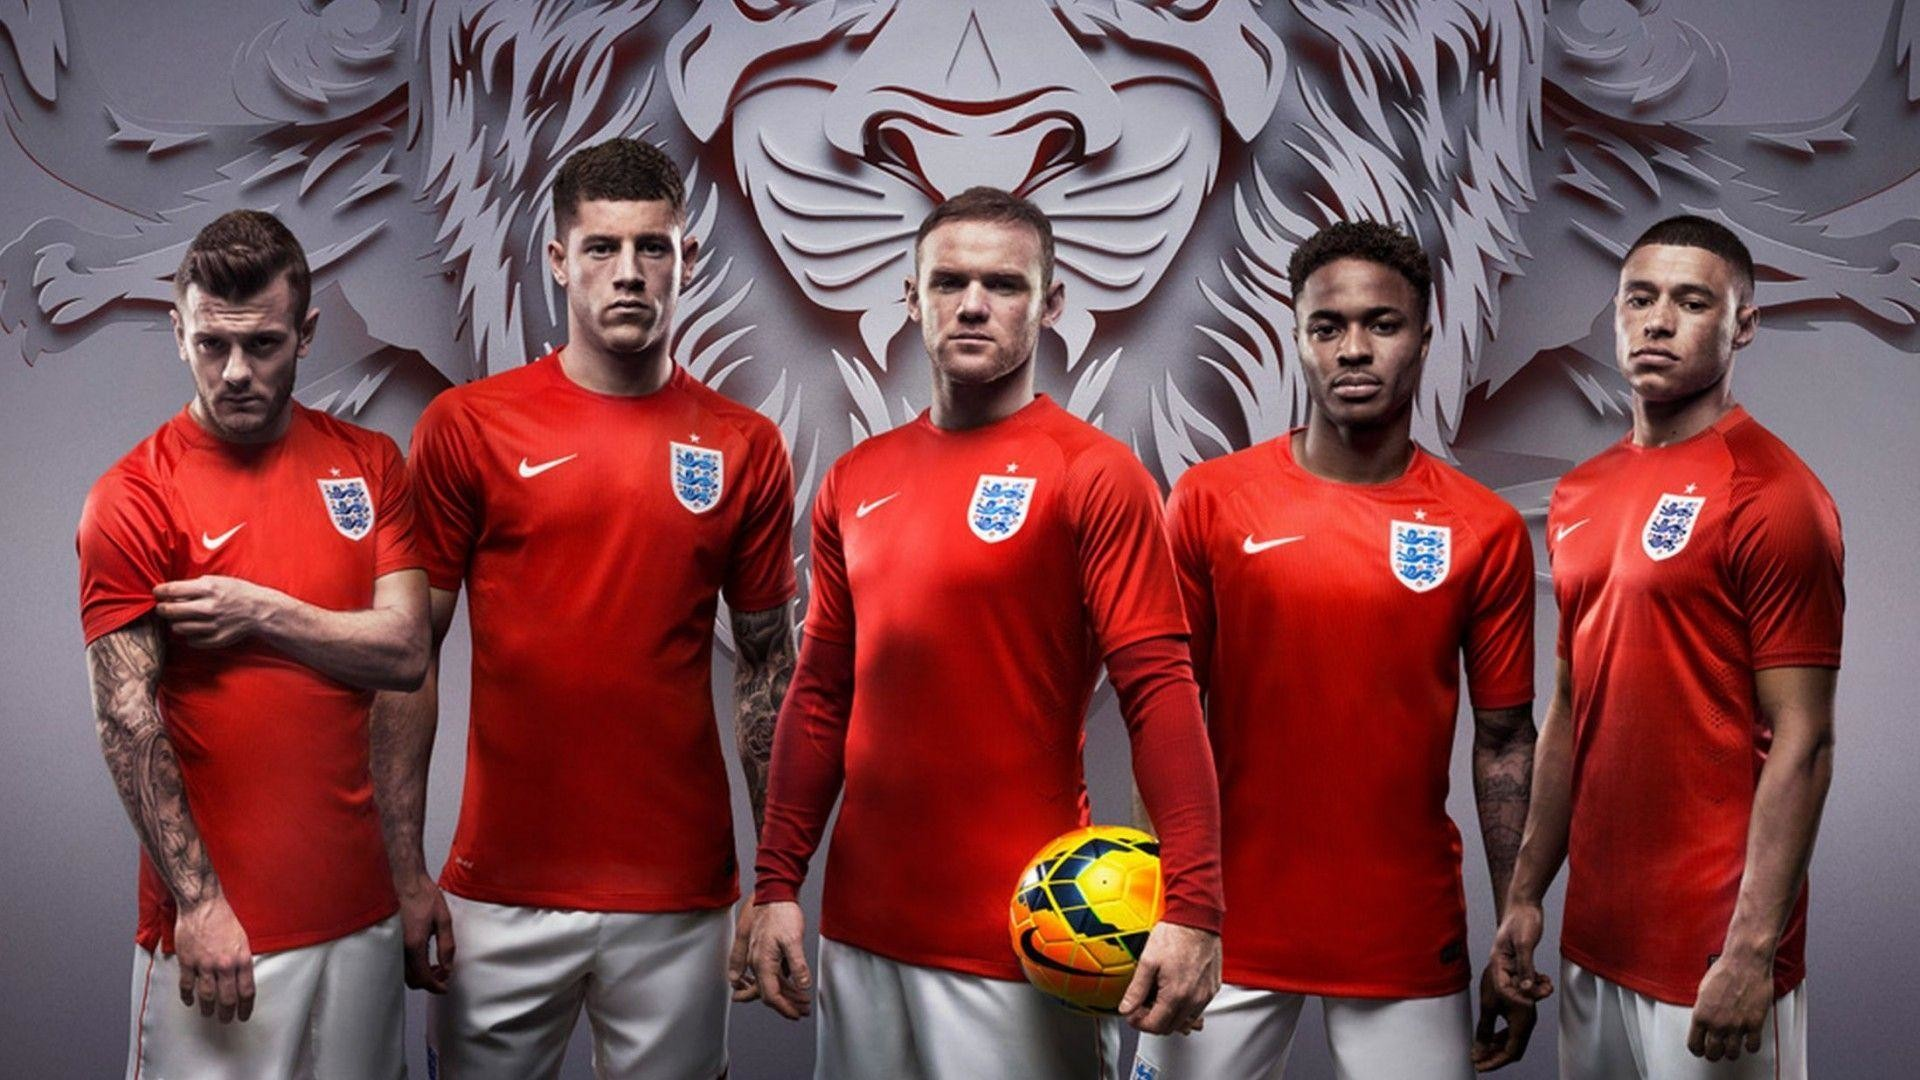 1920x1080 England National Football Team Wallpapers - HD Wallpapers .